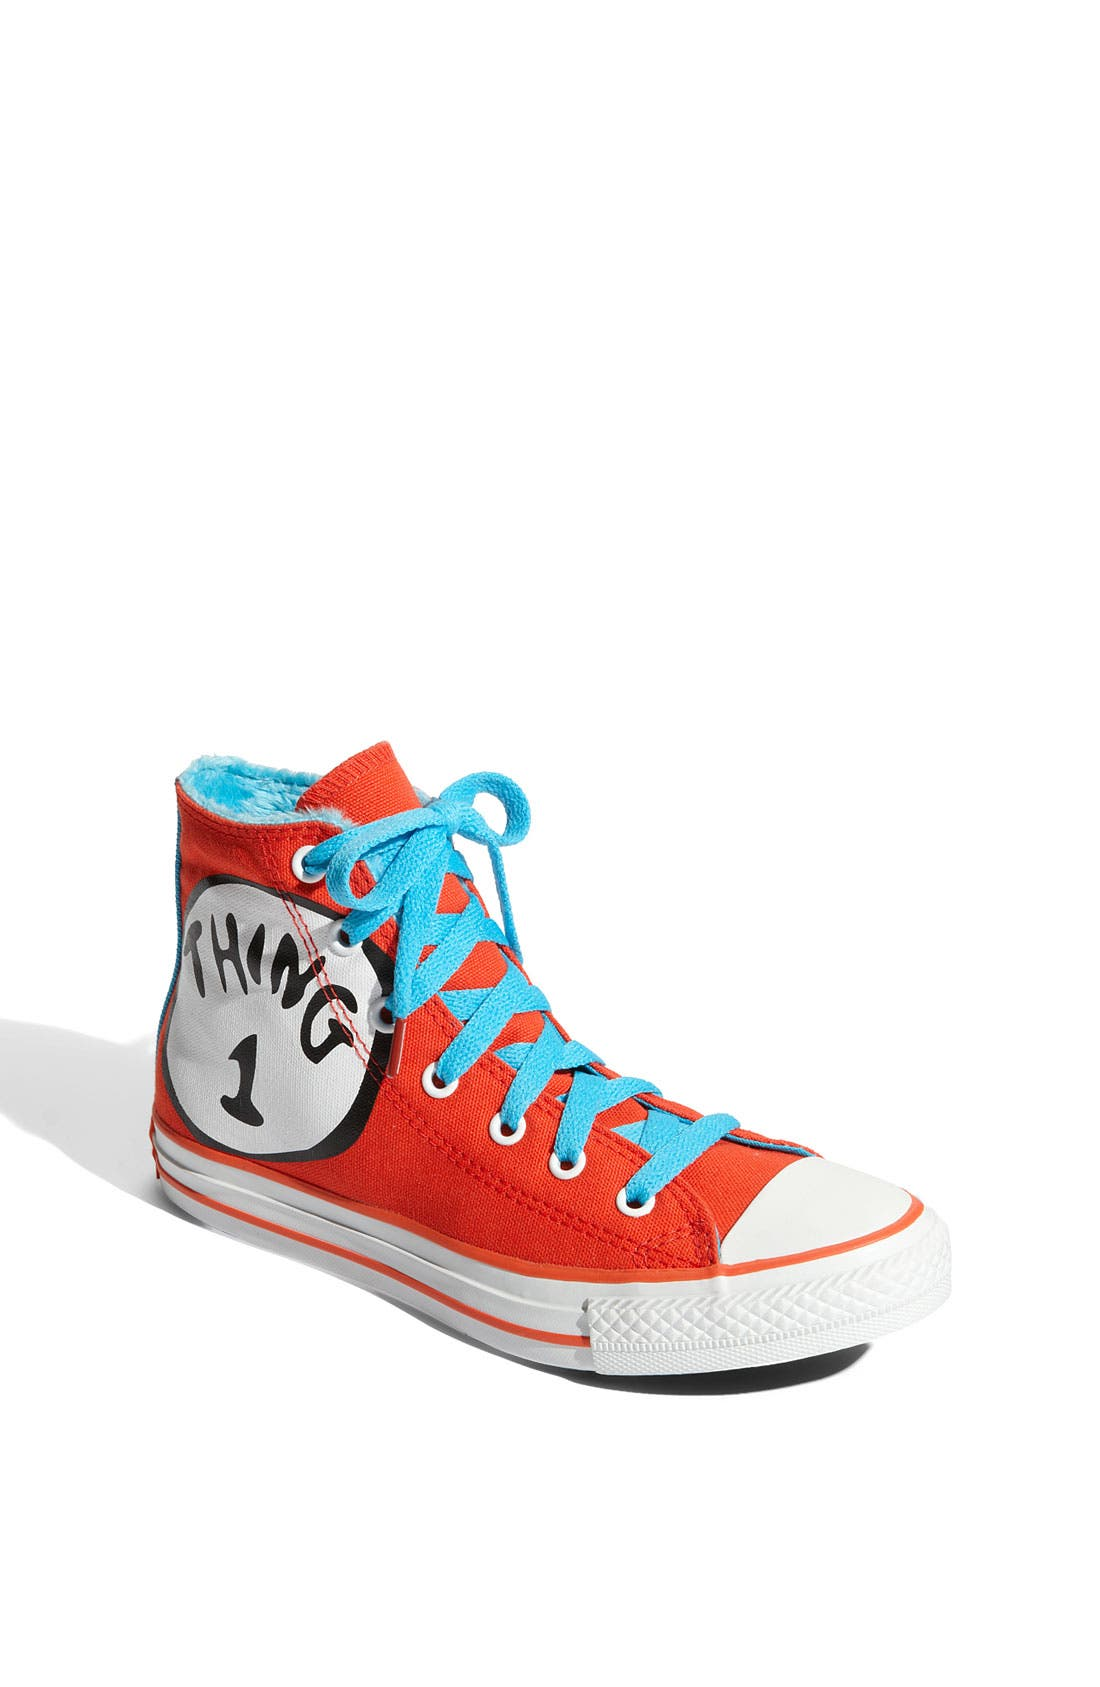 Chuck Taylor<sup>®</sup> 'Dr. Seuss - Thing 1 & Thing 2' Sneaker,                             Alternate thumbnail 3, color,                             618